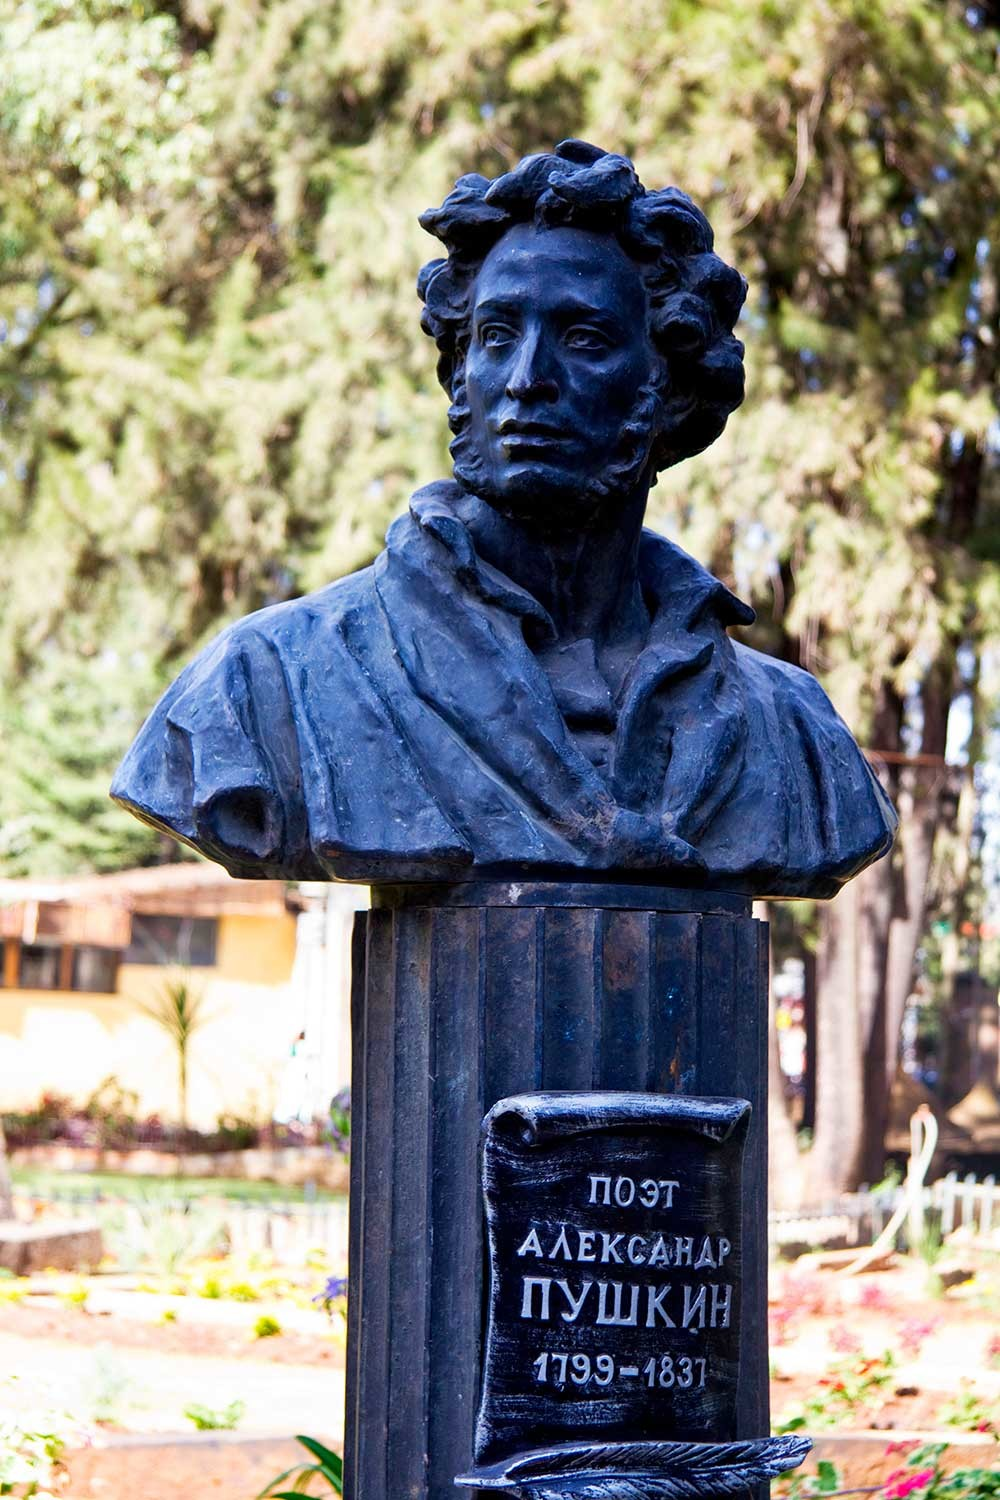 The only monument to Pushkin in Africa, Ethiopia